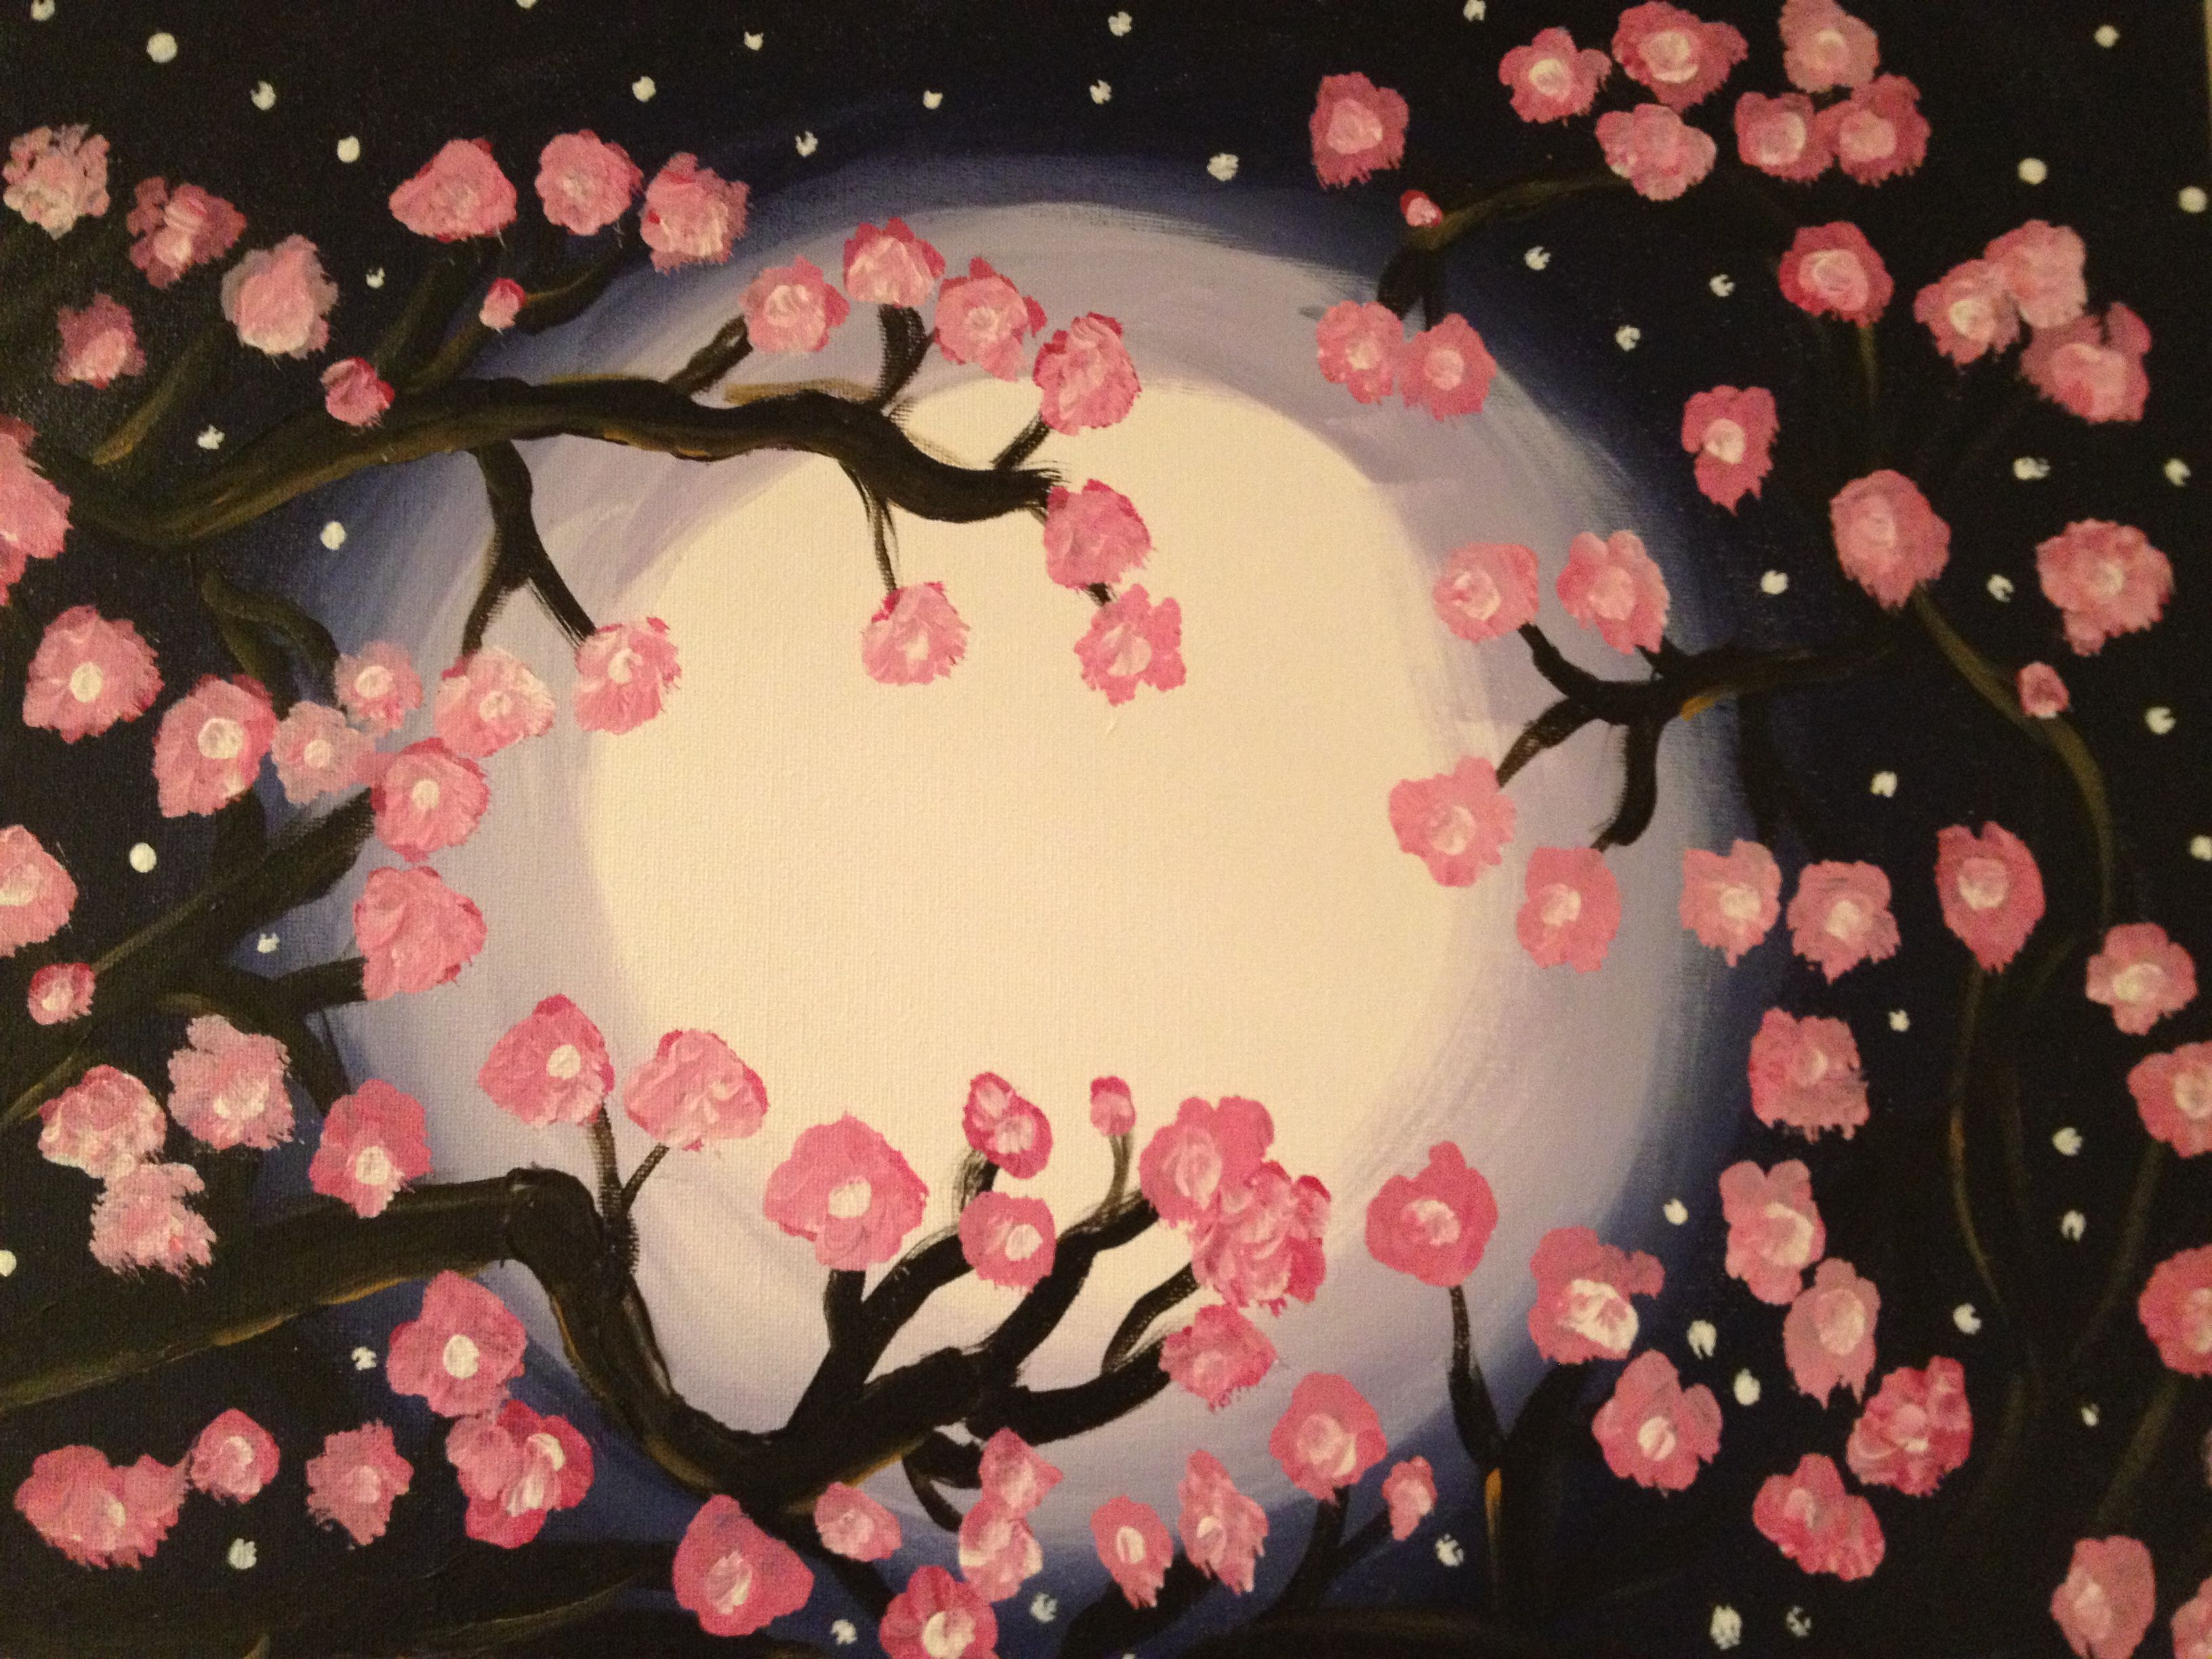 Moonlit cherry blossoms | My OWN paintings and drawings with a twist ...